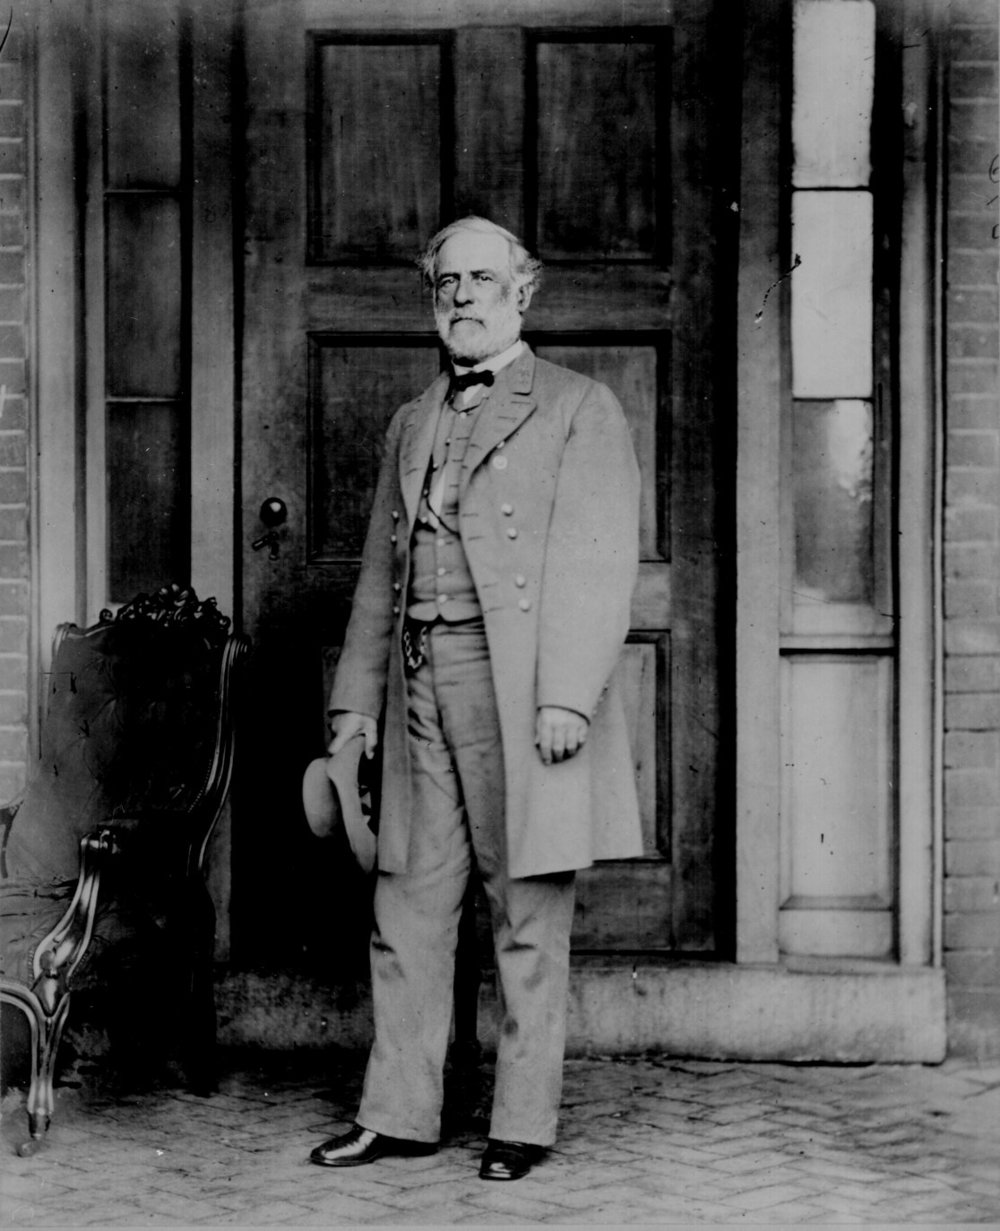 General Robert E. Lee, C.S.A., a week after surrendering the Army of Northern Virginia to General Ulysses S. Grant, effectively ending the American Civil War - April 16, 1865 - Mads 2.jpg